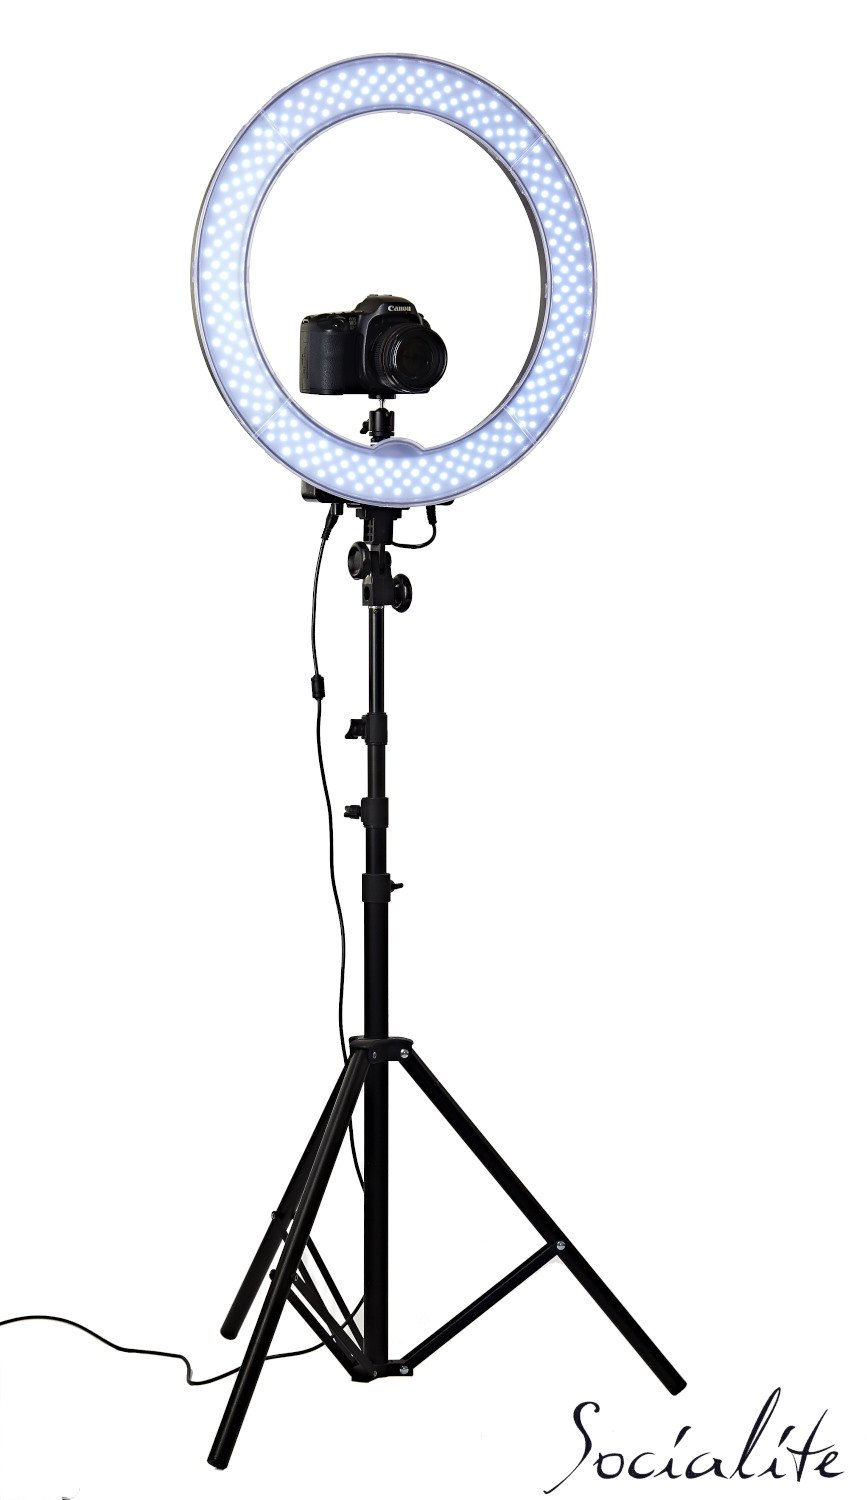 Amazon SOCIALITE 18 LED Live Video Ring Light Kit Incl Professional Studio 6ft Stand Remote Heavy Duty Mounts IPad Tablets DSLR Cameras